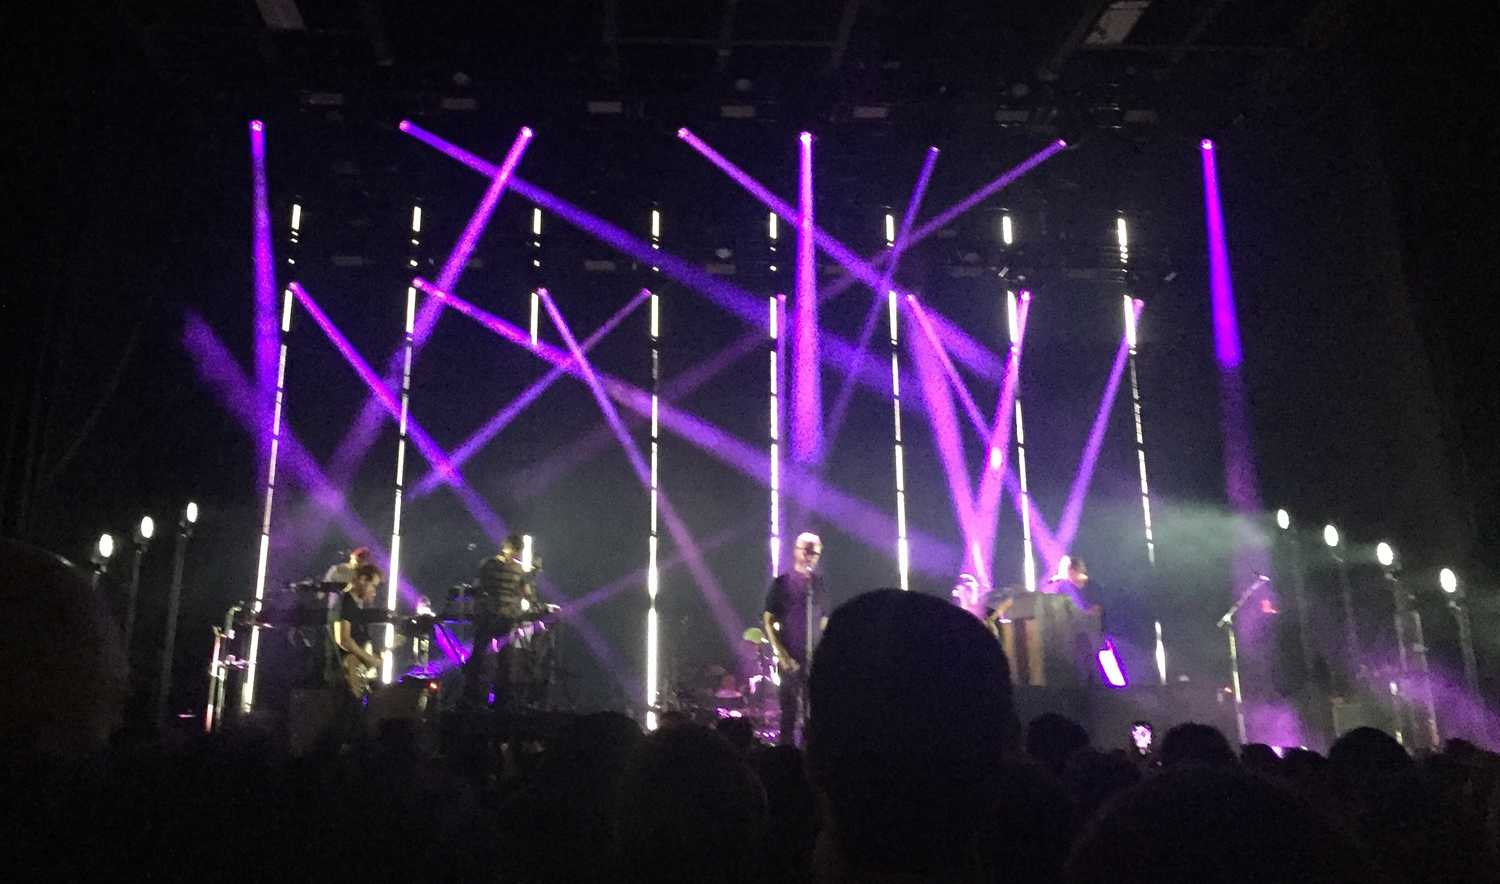 The National, an indie rock band from Cincinnati, played at Stage AE Saturday night. (Photo courtesy of Lexi Kennell)